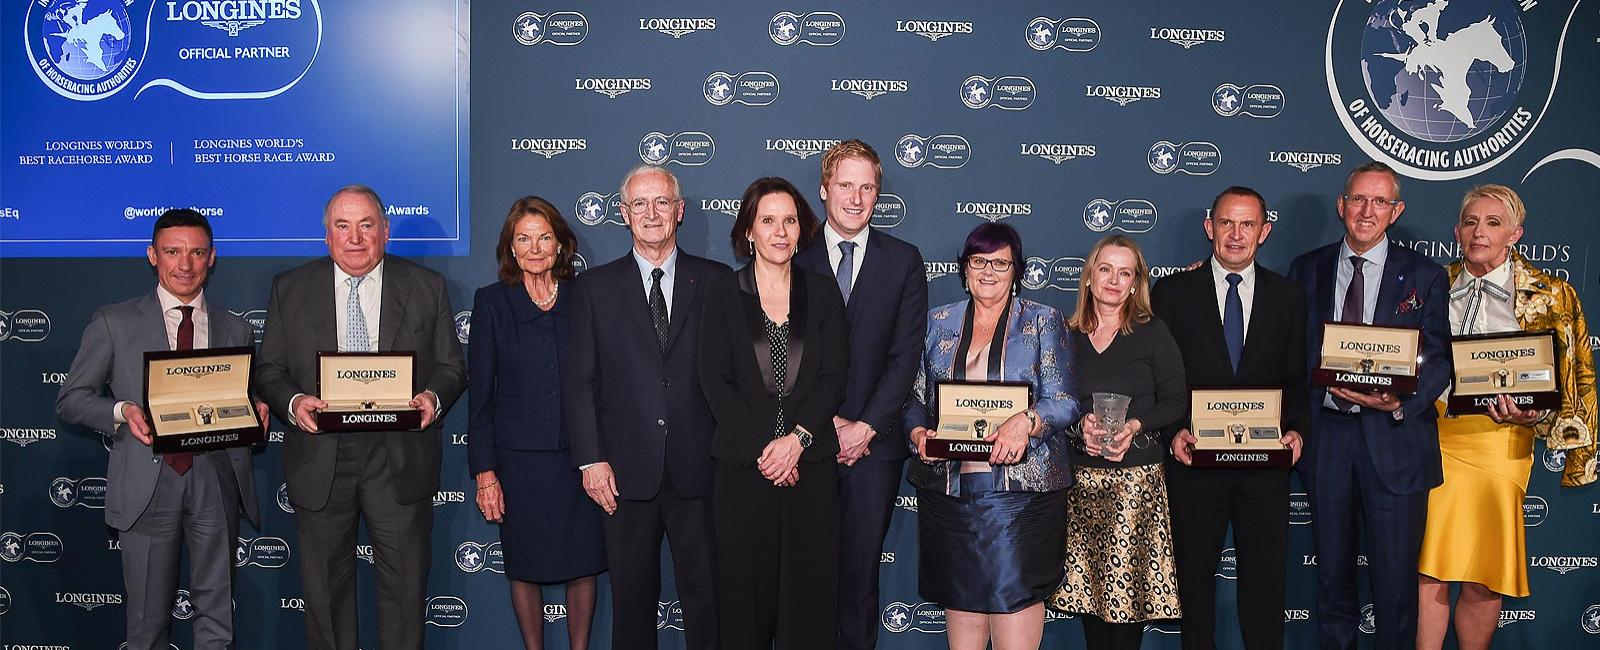 Longines World's Best Racehorse & Best Race 2018; Horse Racing; 2019